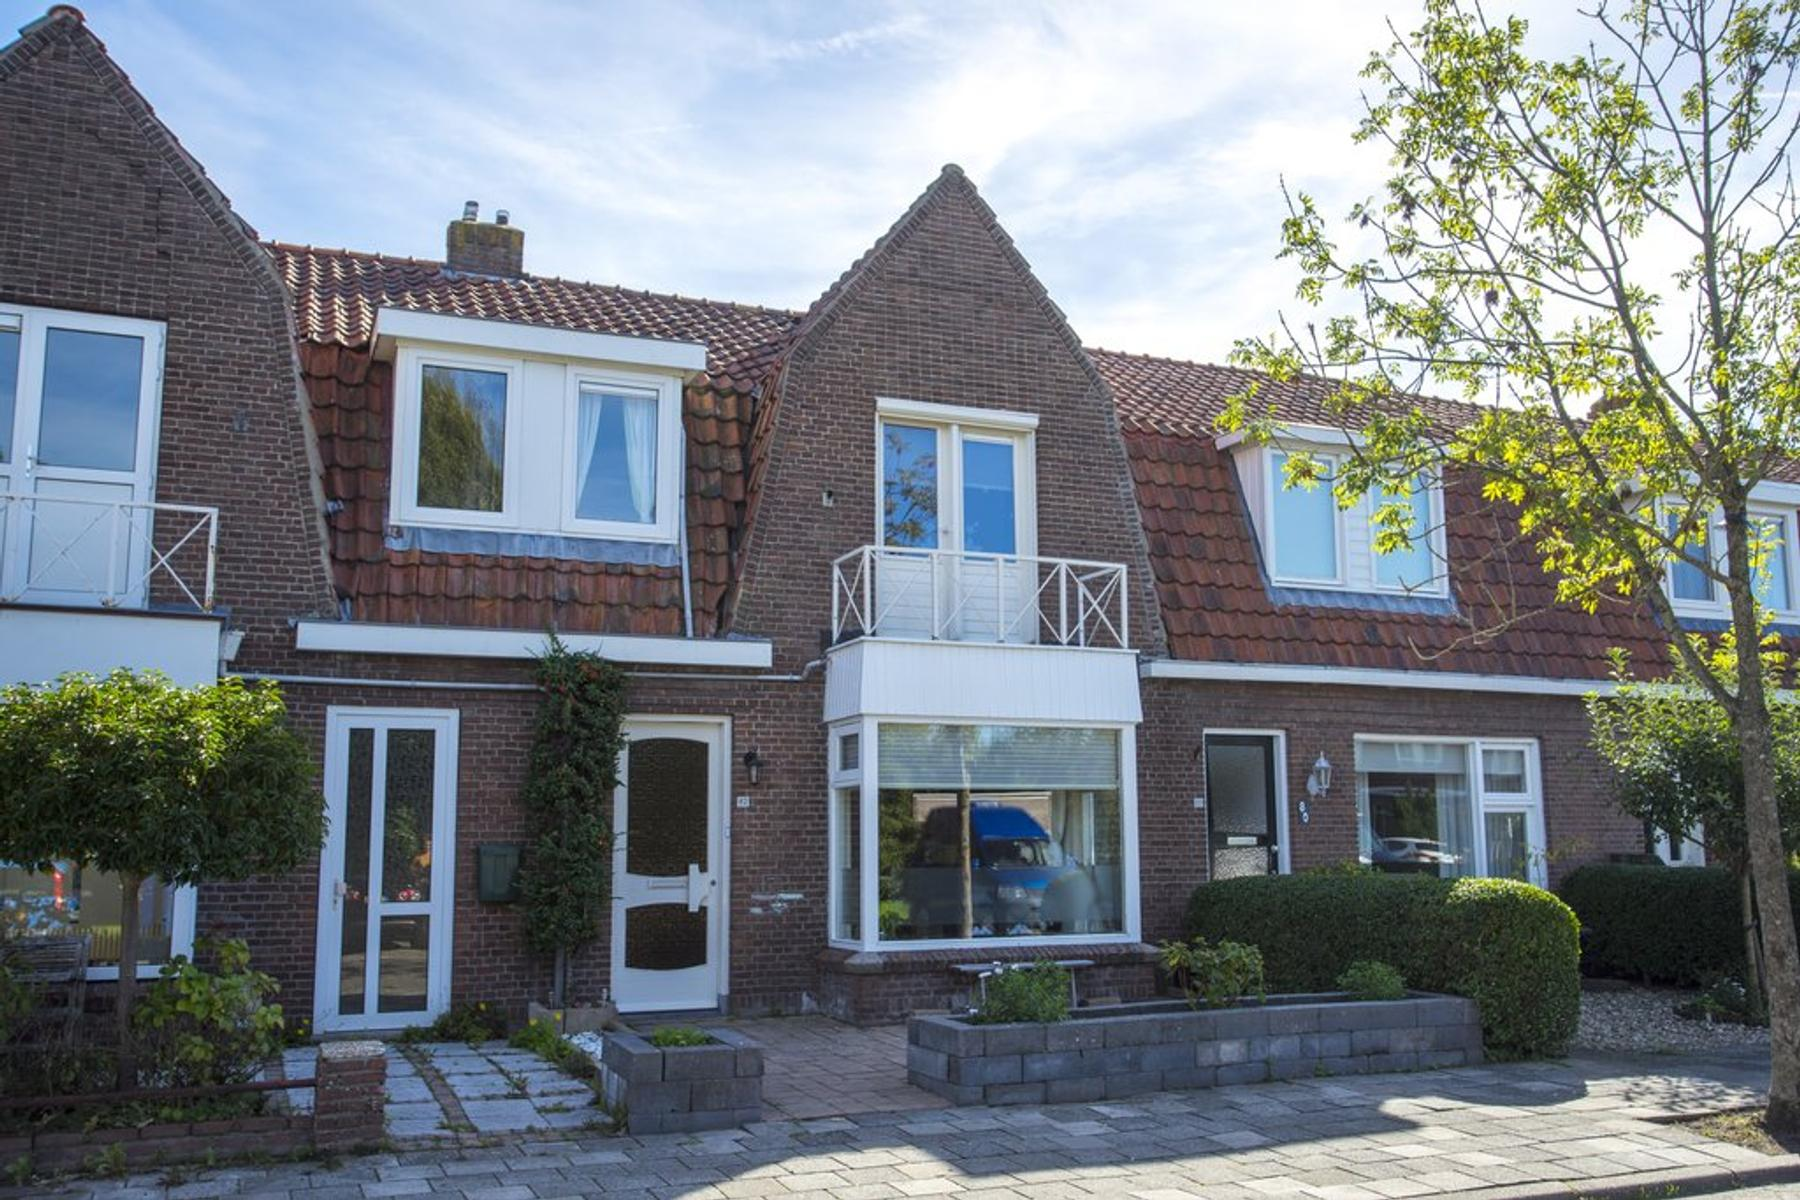 Willem De Zwijgerstraat 82 in Sneek 8606 ED